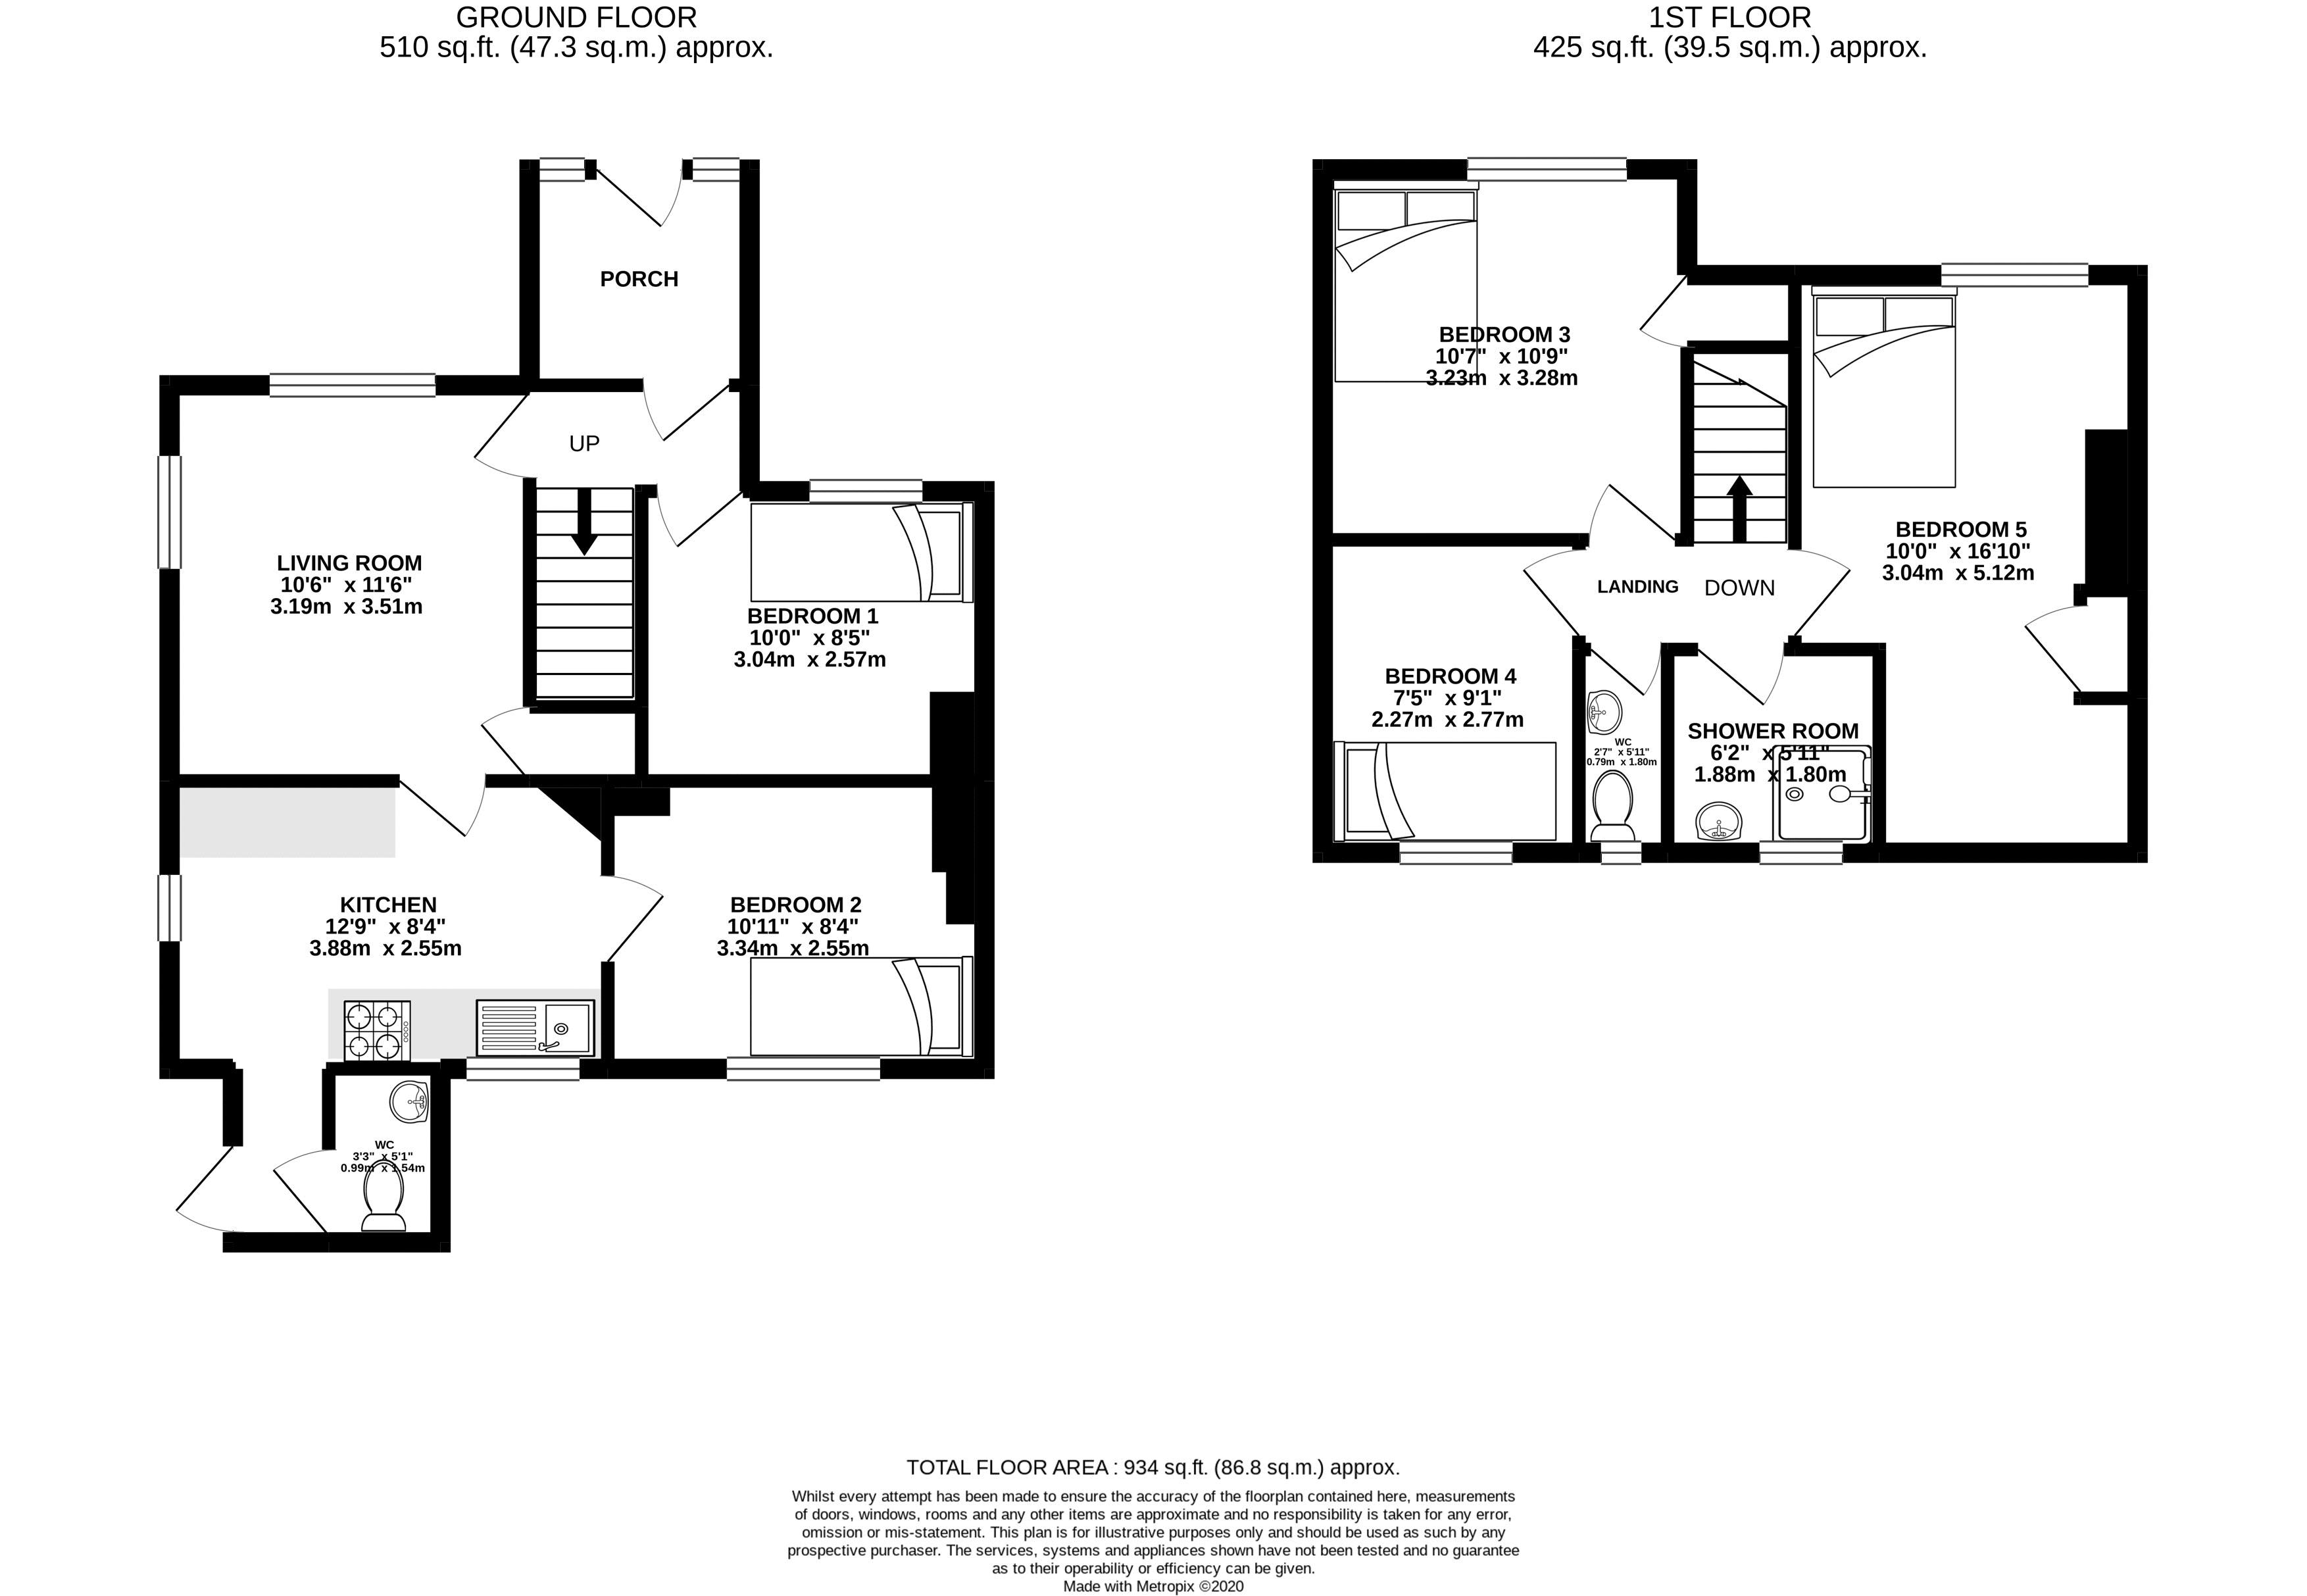 Floor plans for The Avenue, Brighton property for sale in Bevendean, Brighton by Coapt